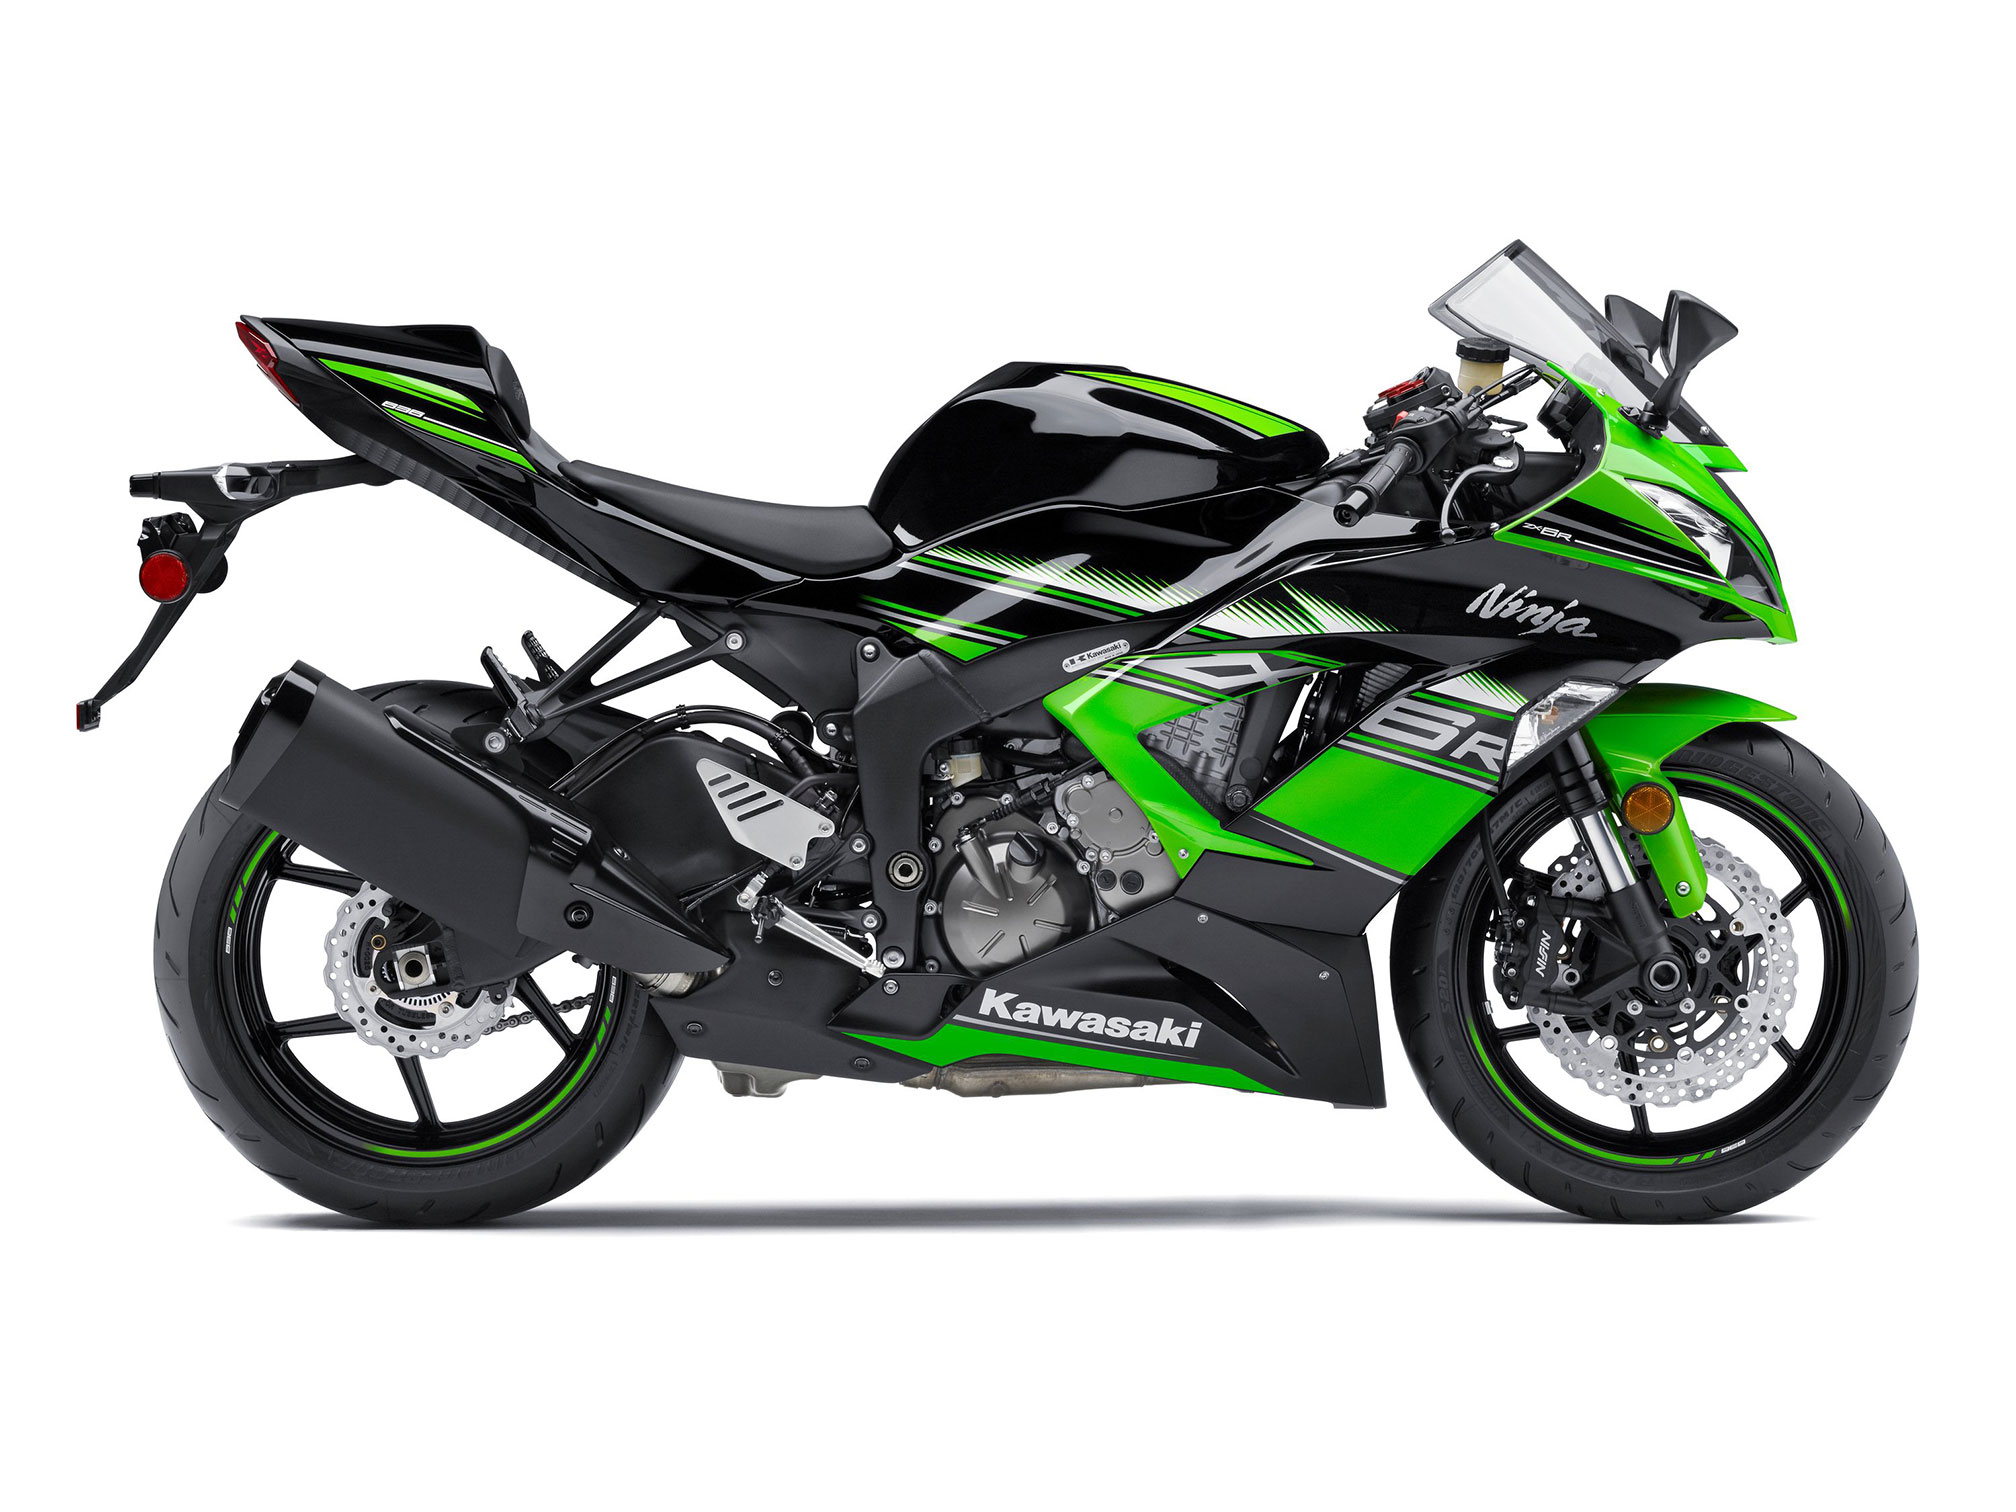 2016 kawasaki ninja zx 6r krt edition review